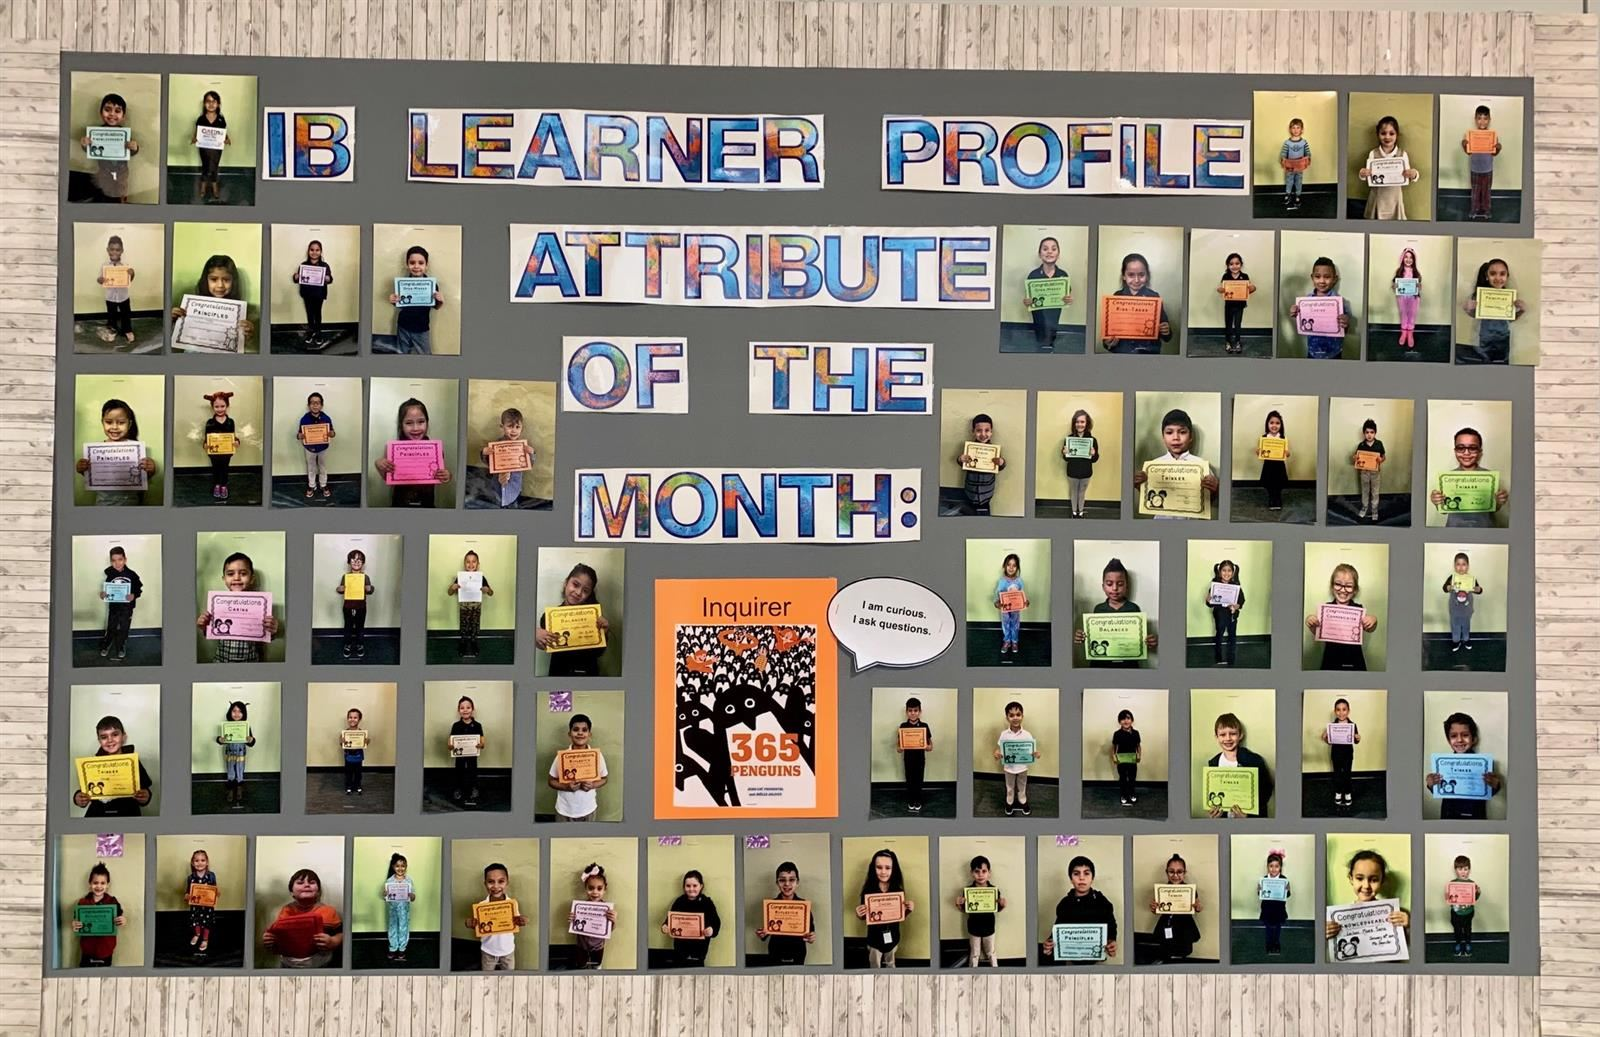 Learner Profile Attribute of the Month